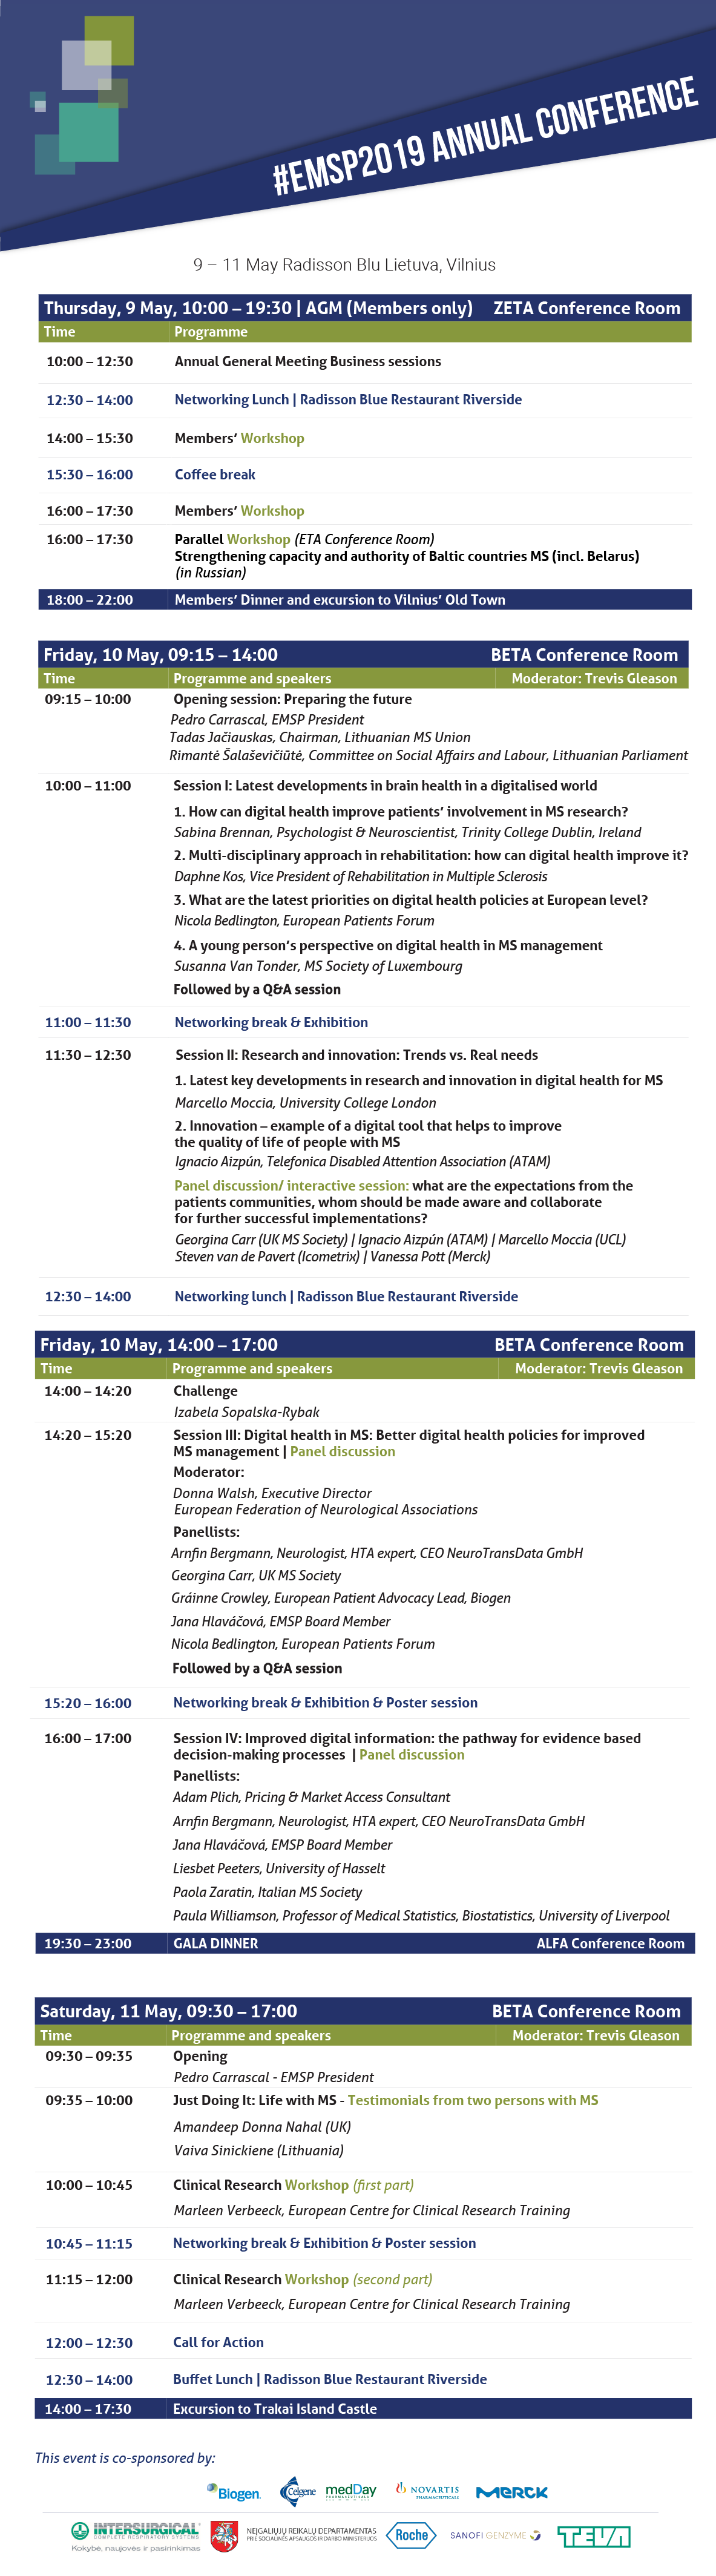 EMSP-Annual-Conference-Full-Programme-Website.png